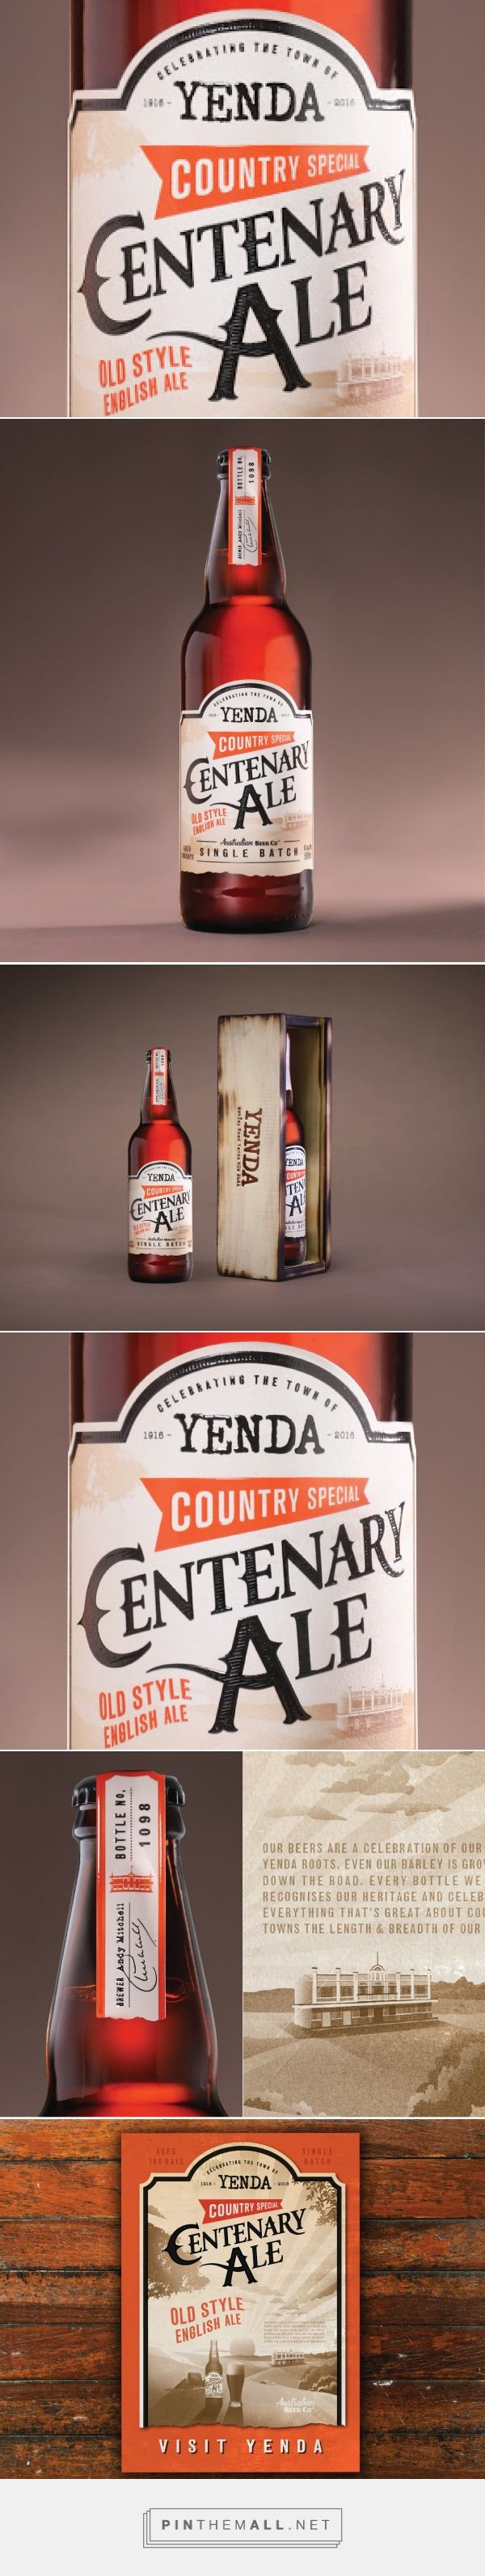 Yenda Centenary Ale - Packaging of the World - Creative Package Design Gallery - http://www.packagingoftheworld.com/2017/03/yenda-centenary-ale.html